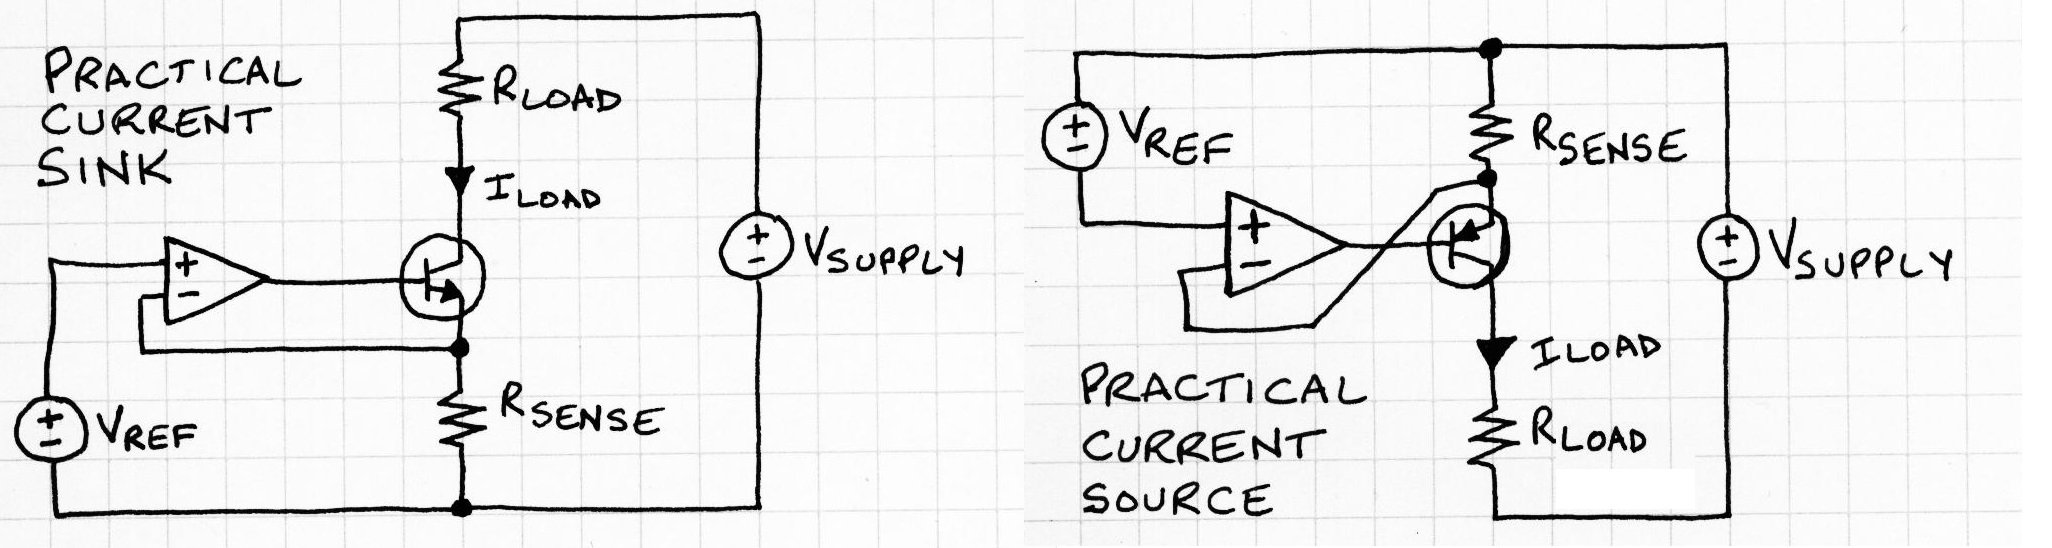 Picture of Practical Current Sources and Sinks